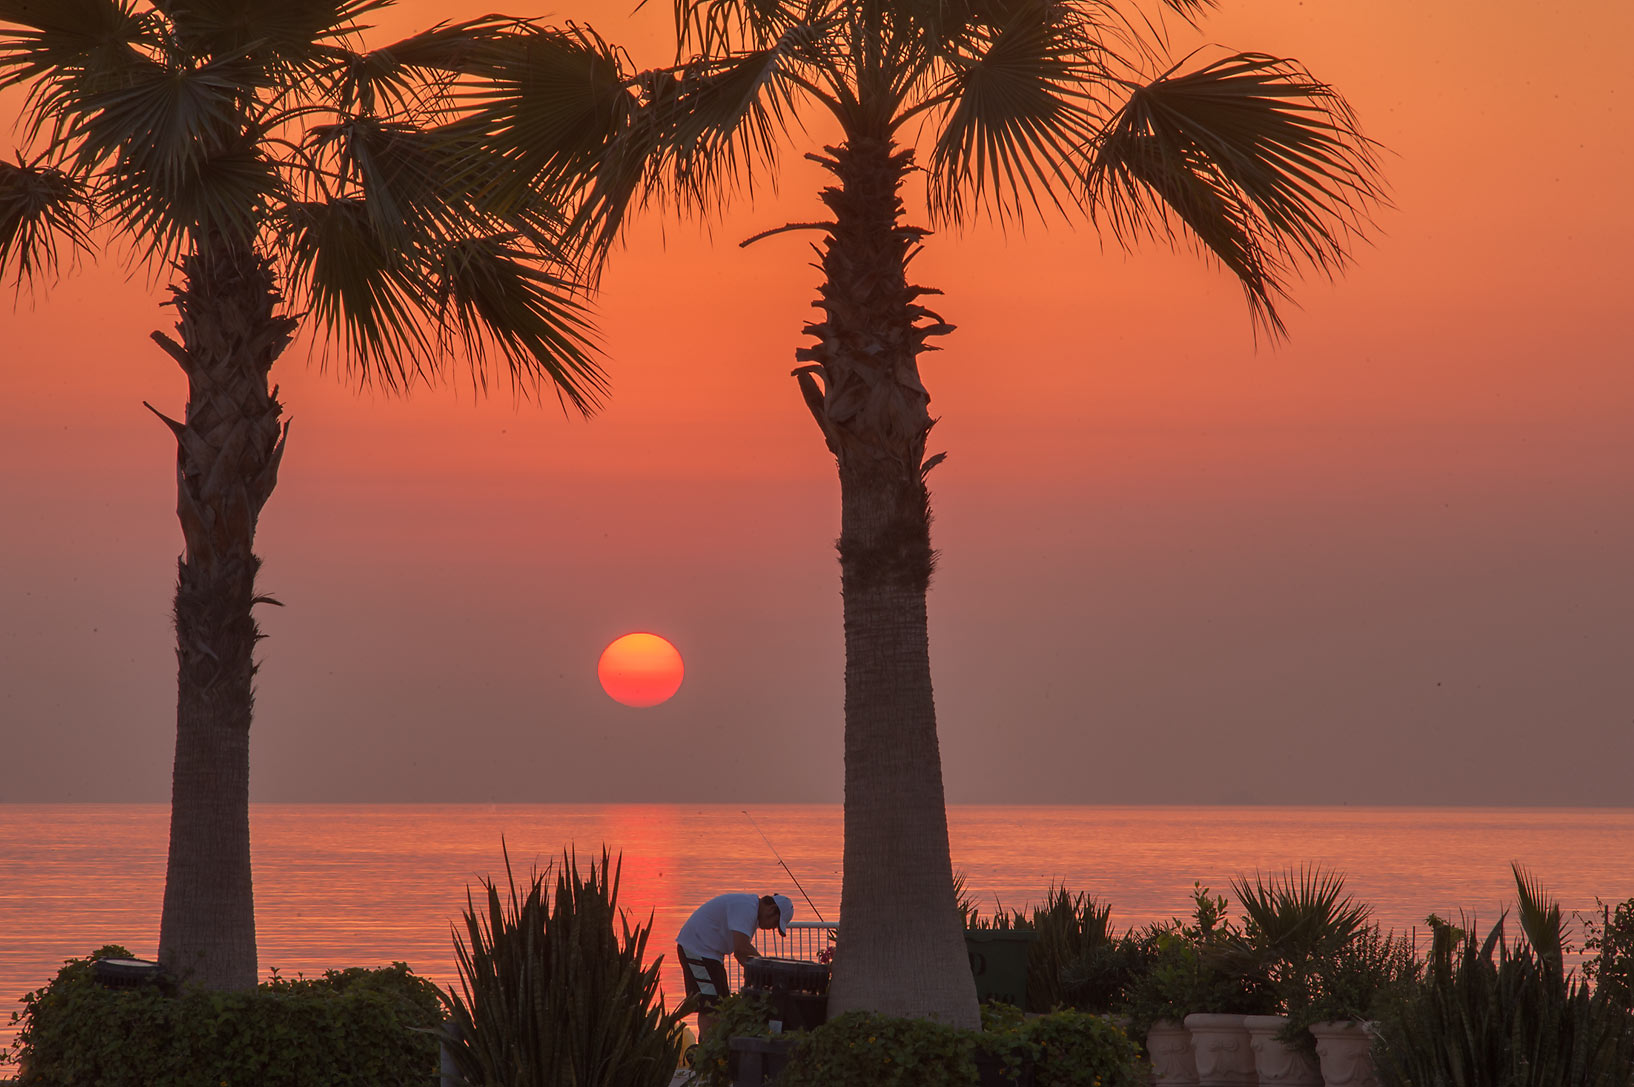 Sunrise through palms of Corniche Promenade. Doha, Qatar